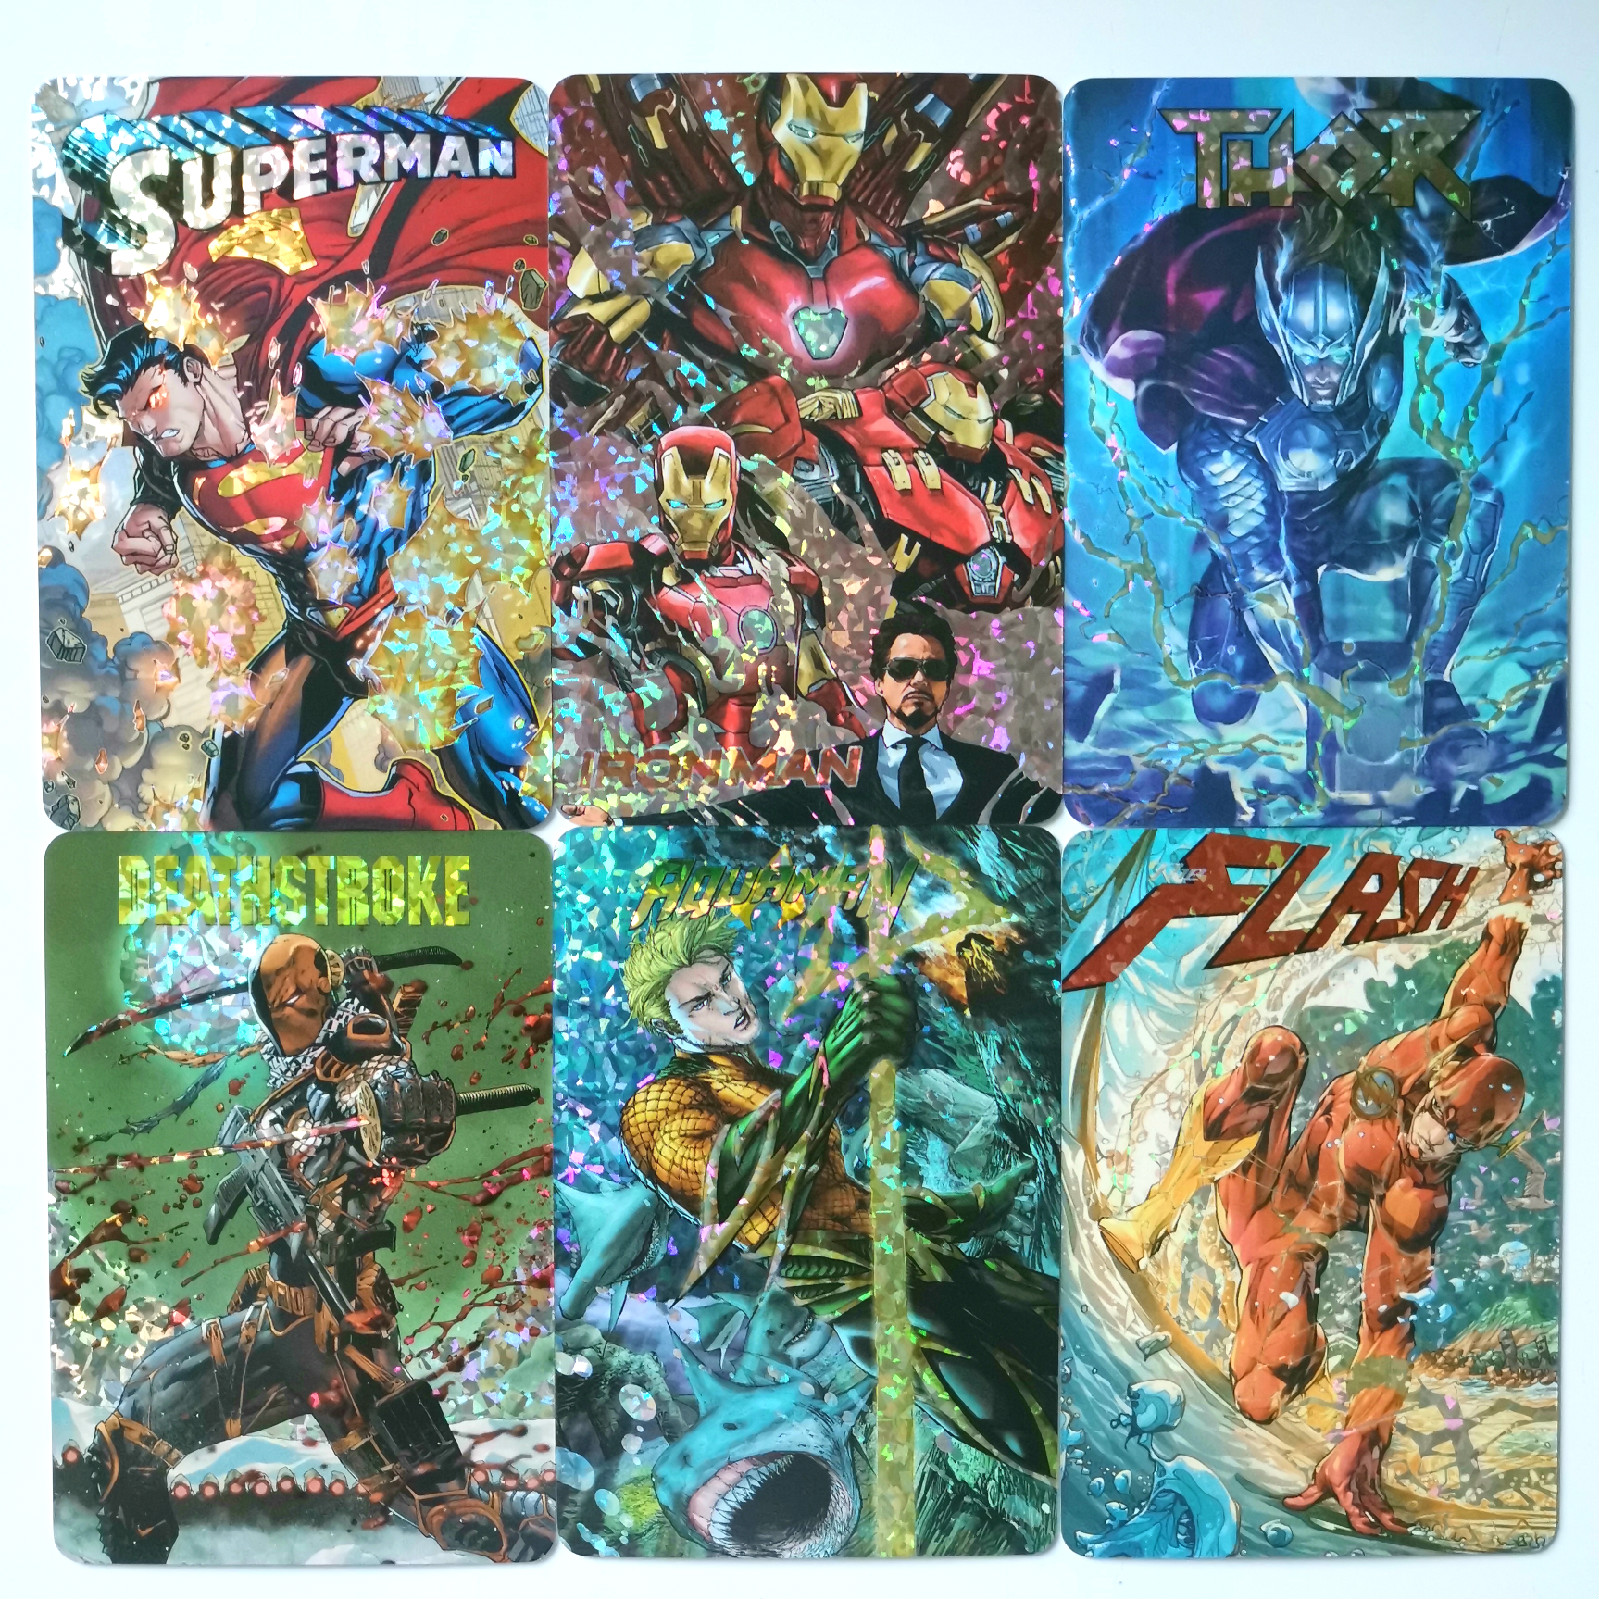 18-20pcs/set Superhero Marvel DC Toys Hobbies Hobby Collectibles Game Collection Anime Cards